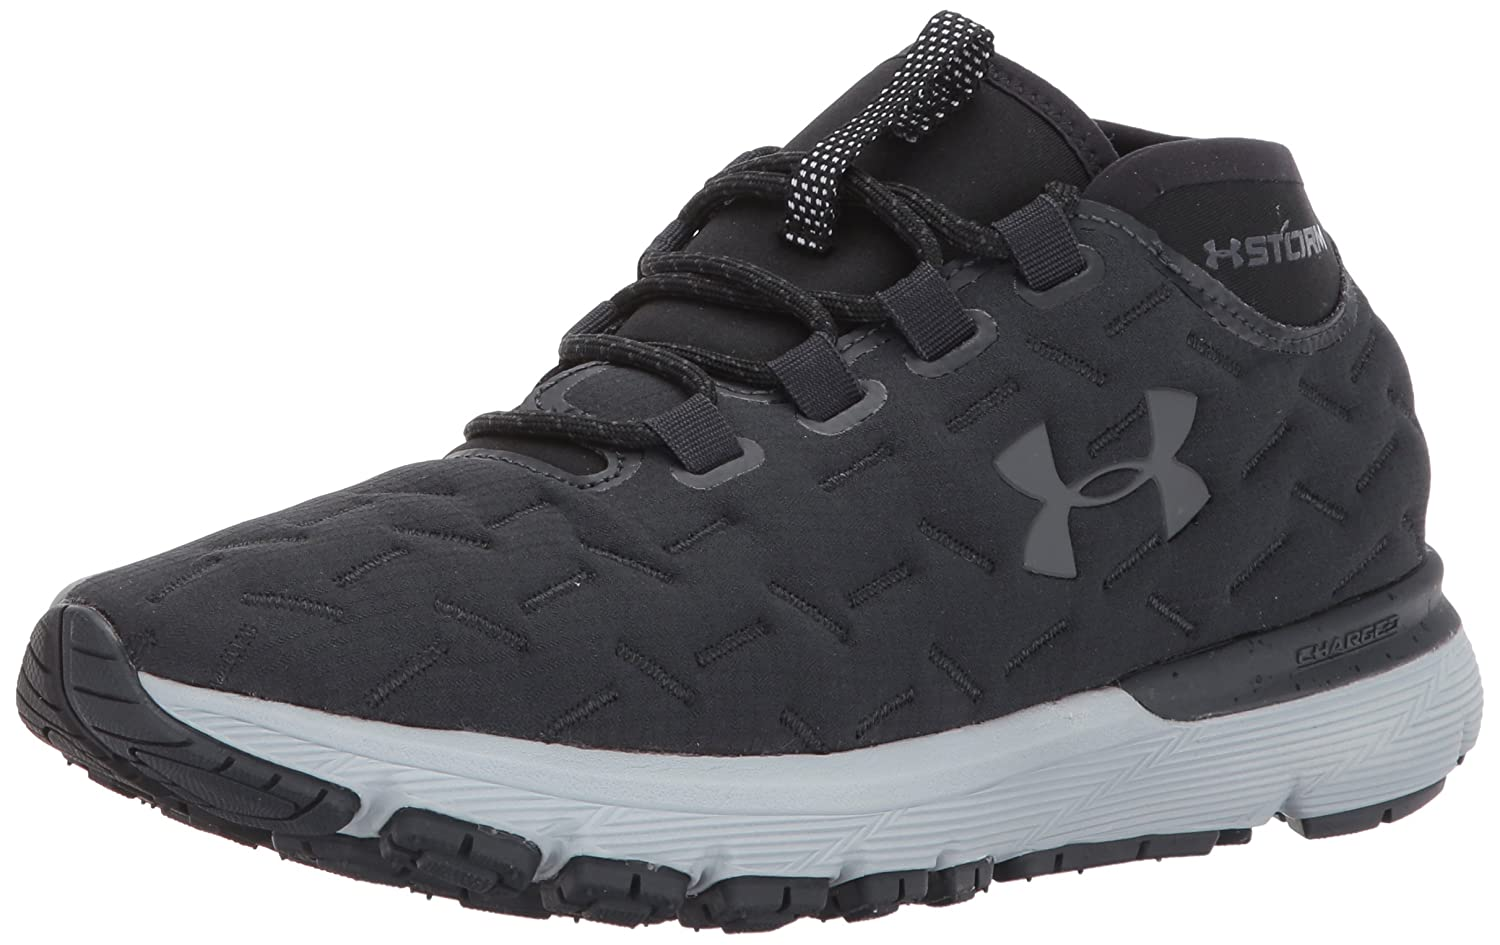 newest 06406 e2f32 Under Armour Women's Charged Reactor Run Shoe